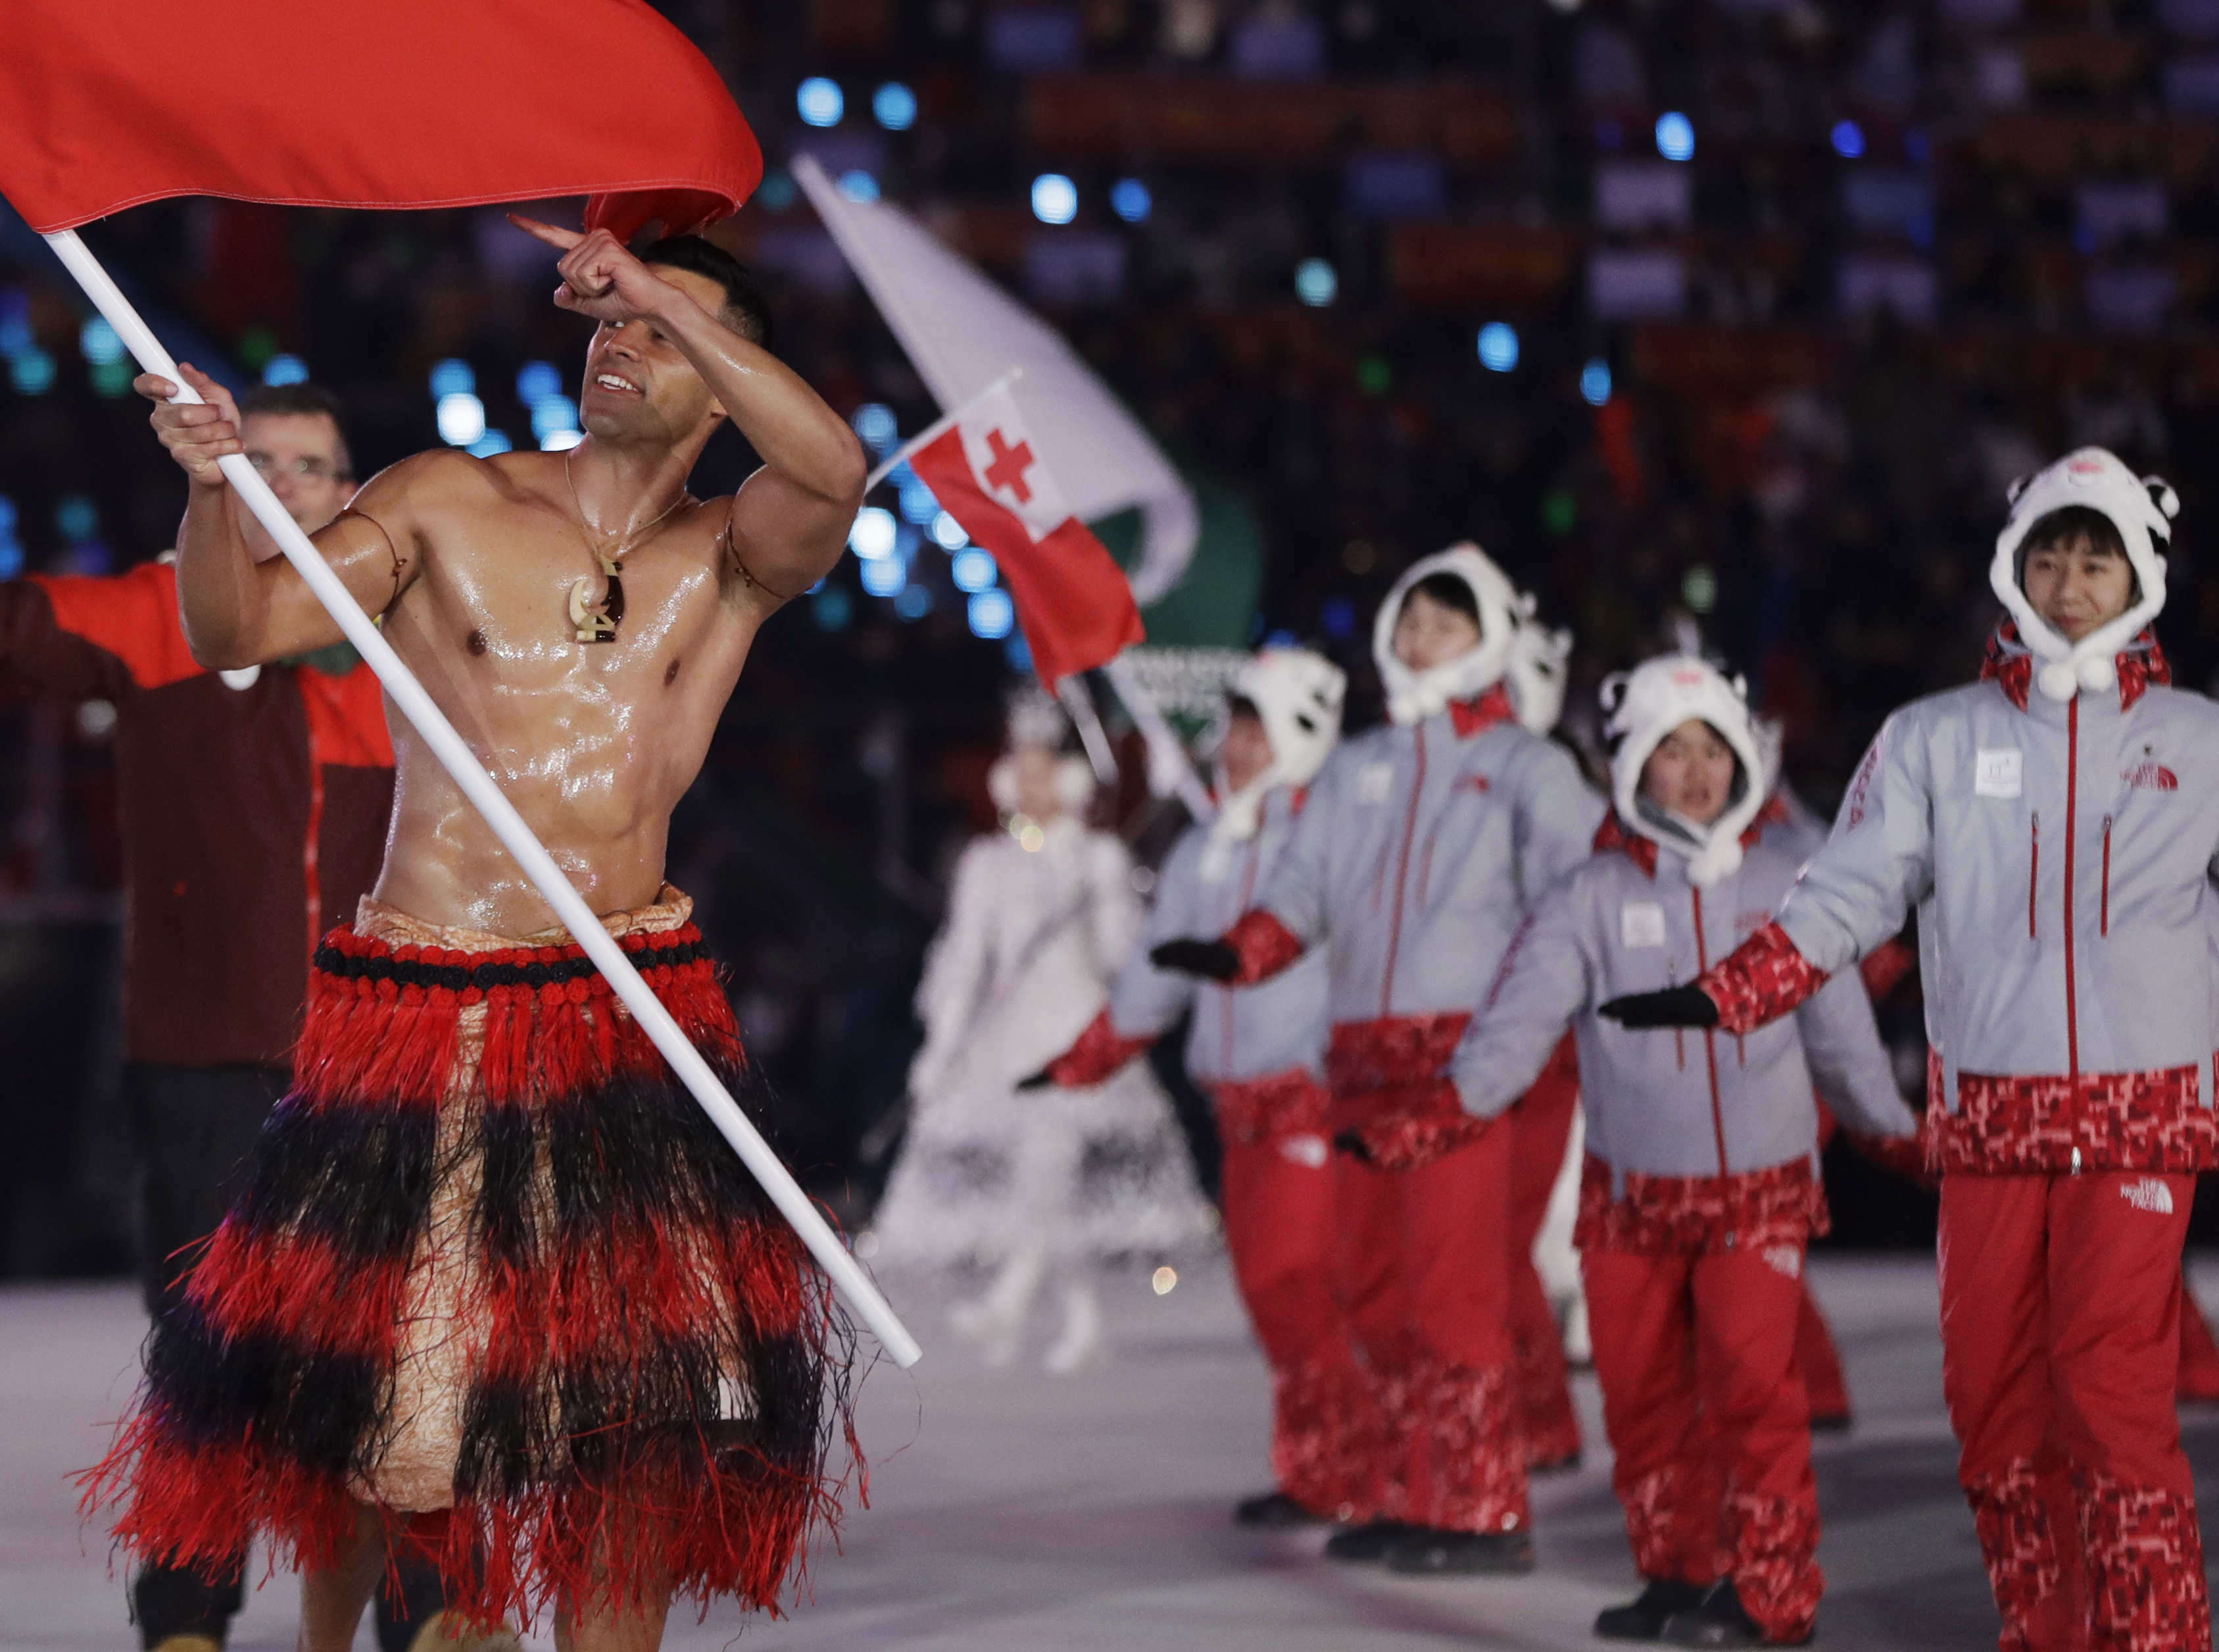 Tonga Winter Olympics 2020.Someone Give That Glistening Tongan Skier A Gold Medal